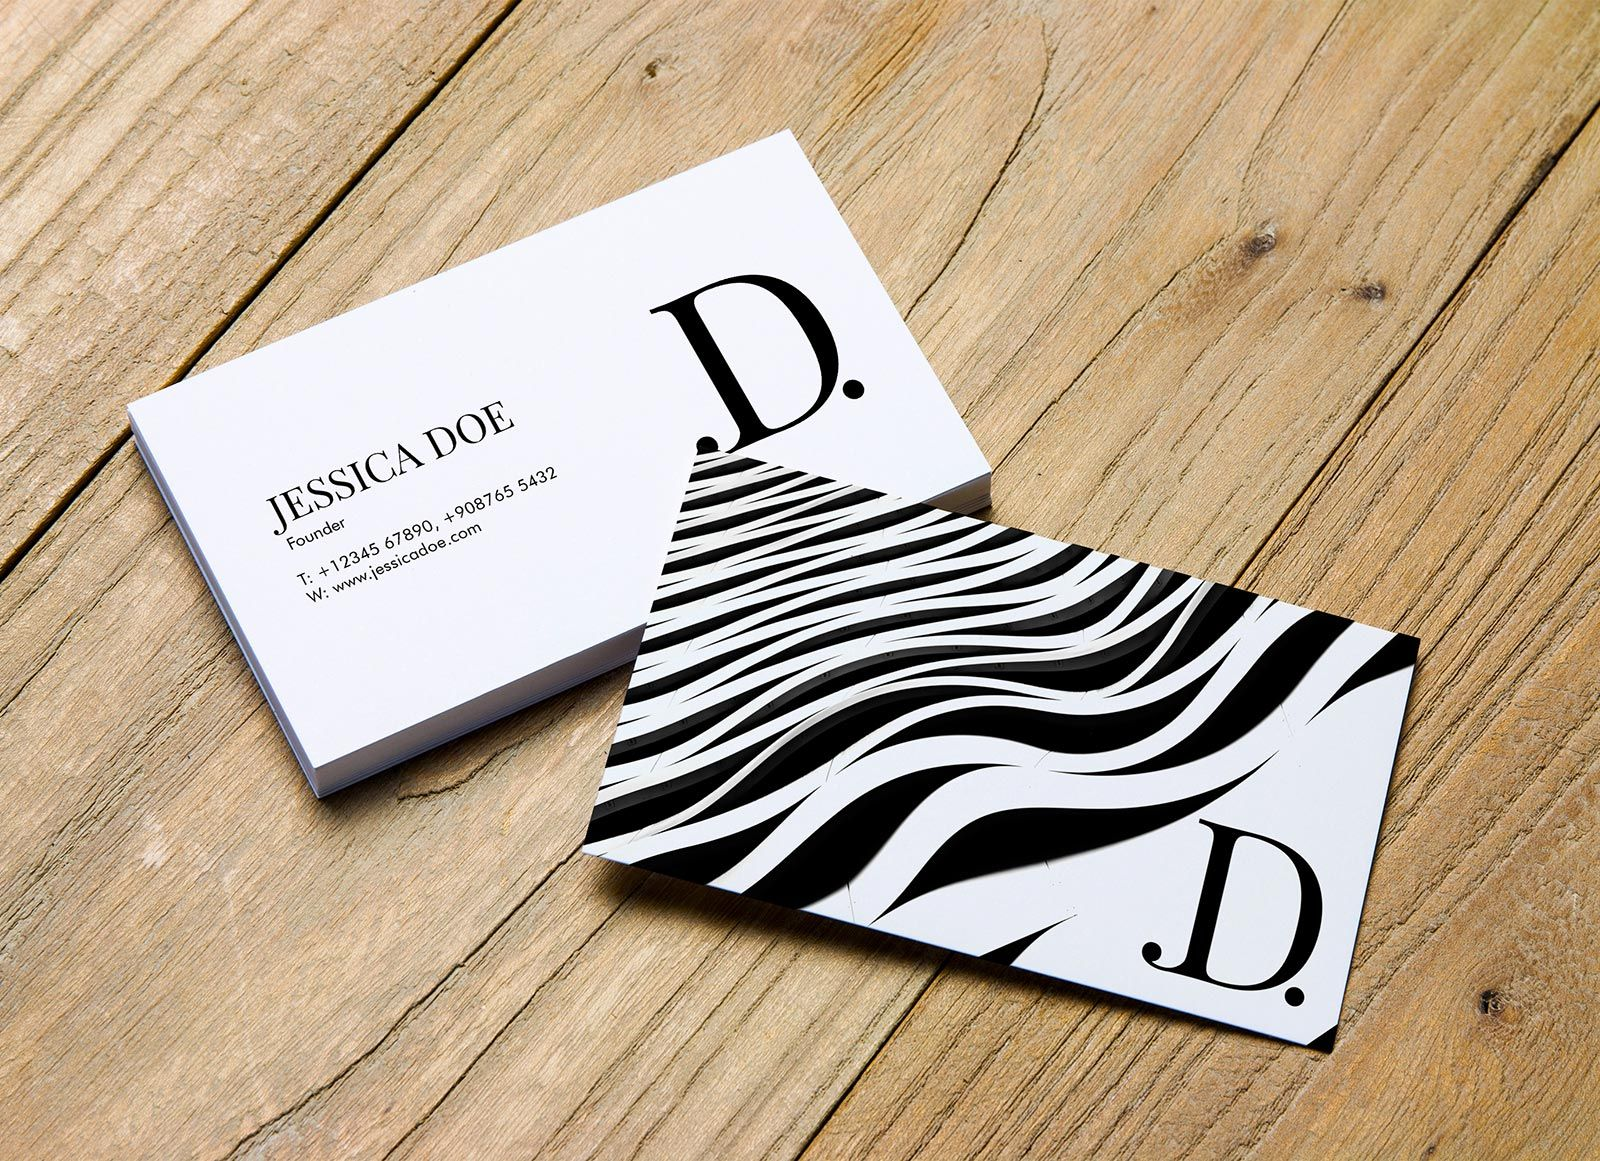 2 Beautiful Single Double Sided Business Card Mockup PSD Files